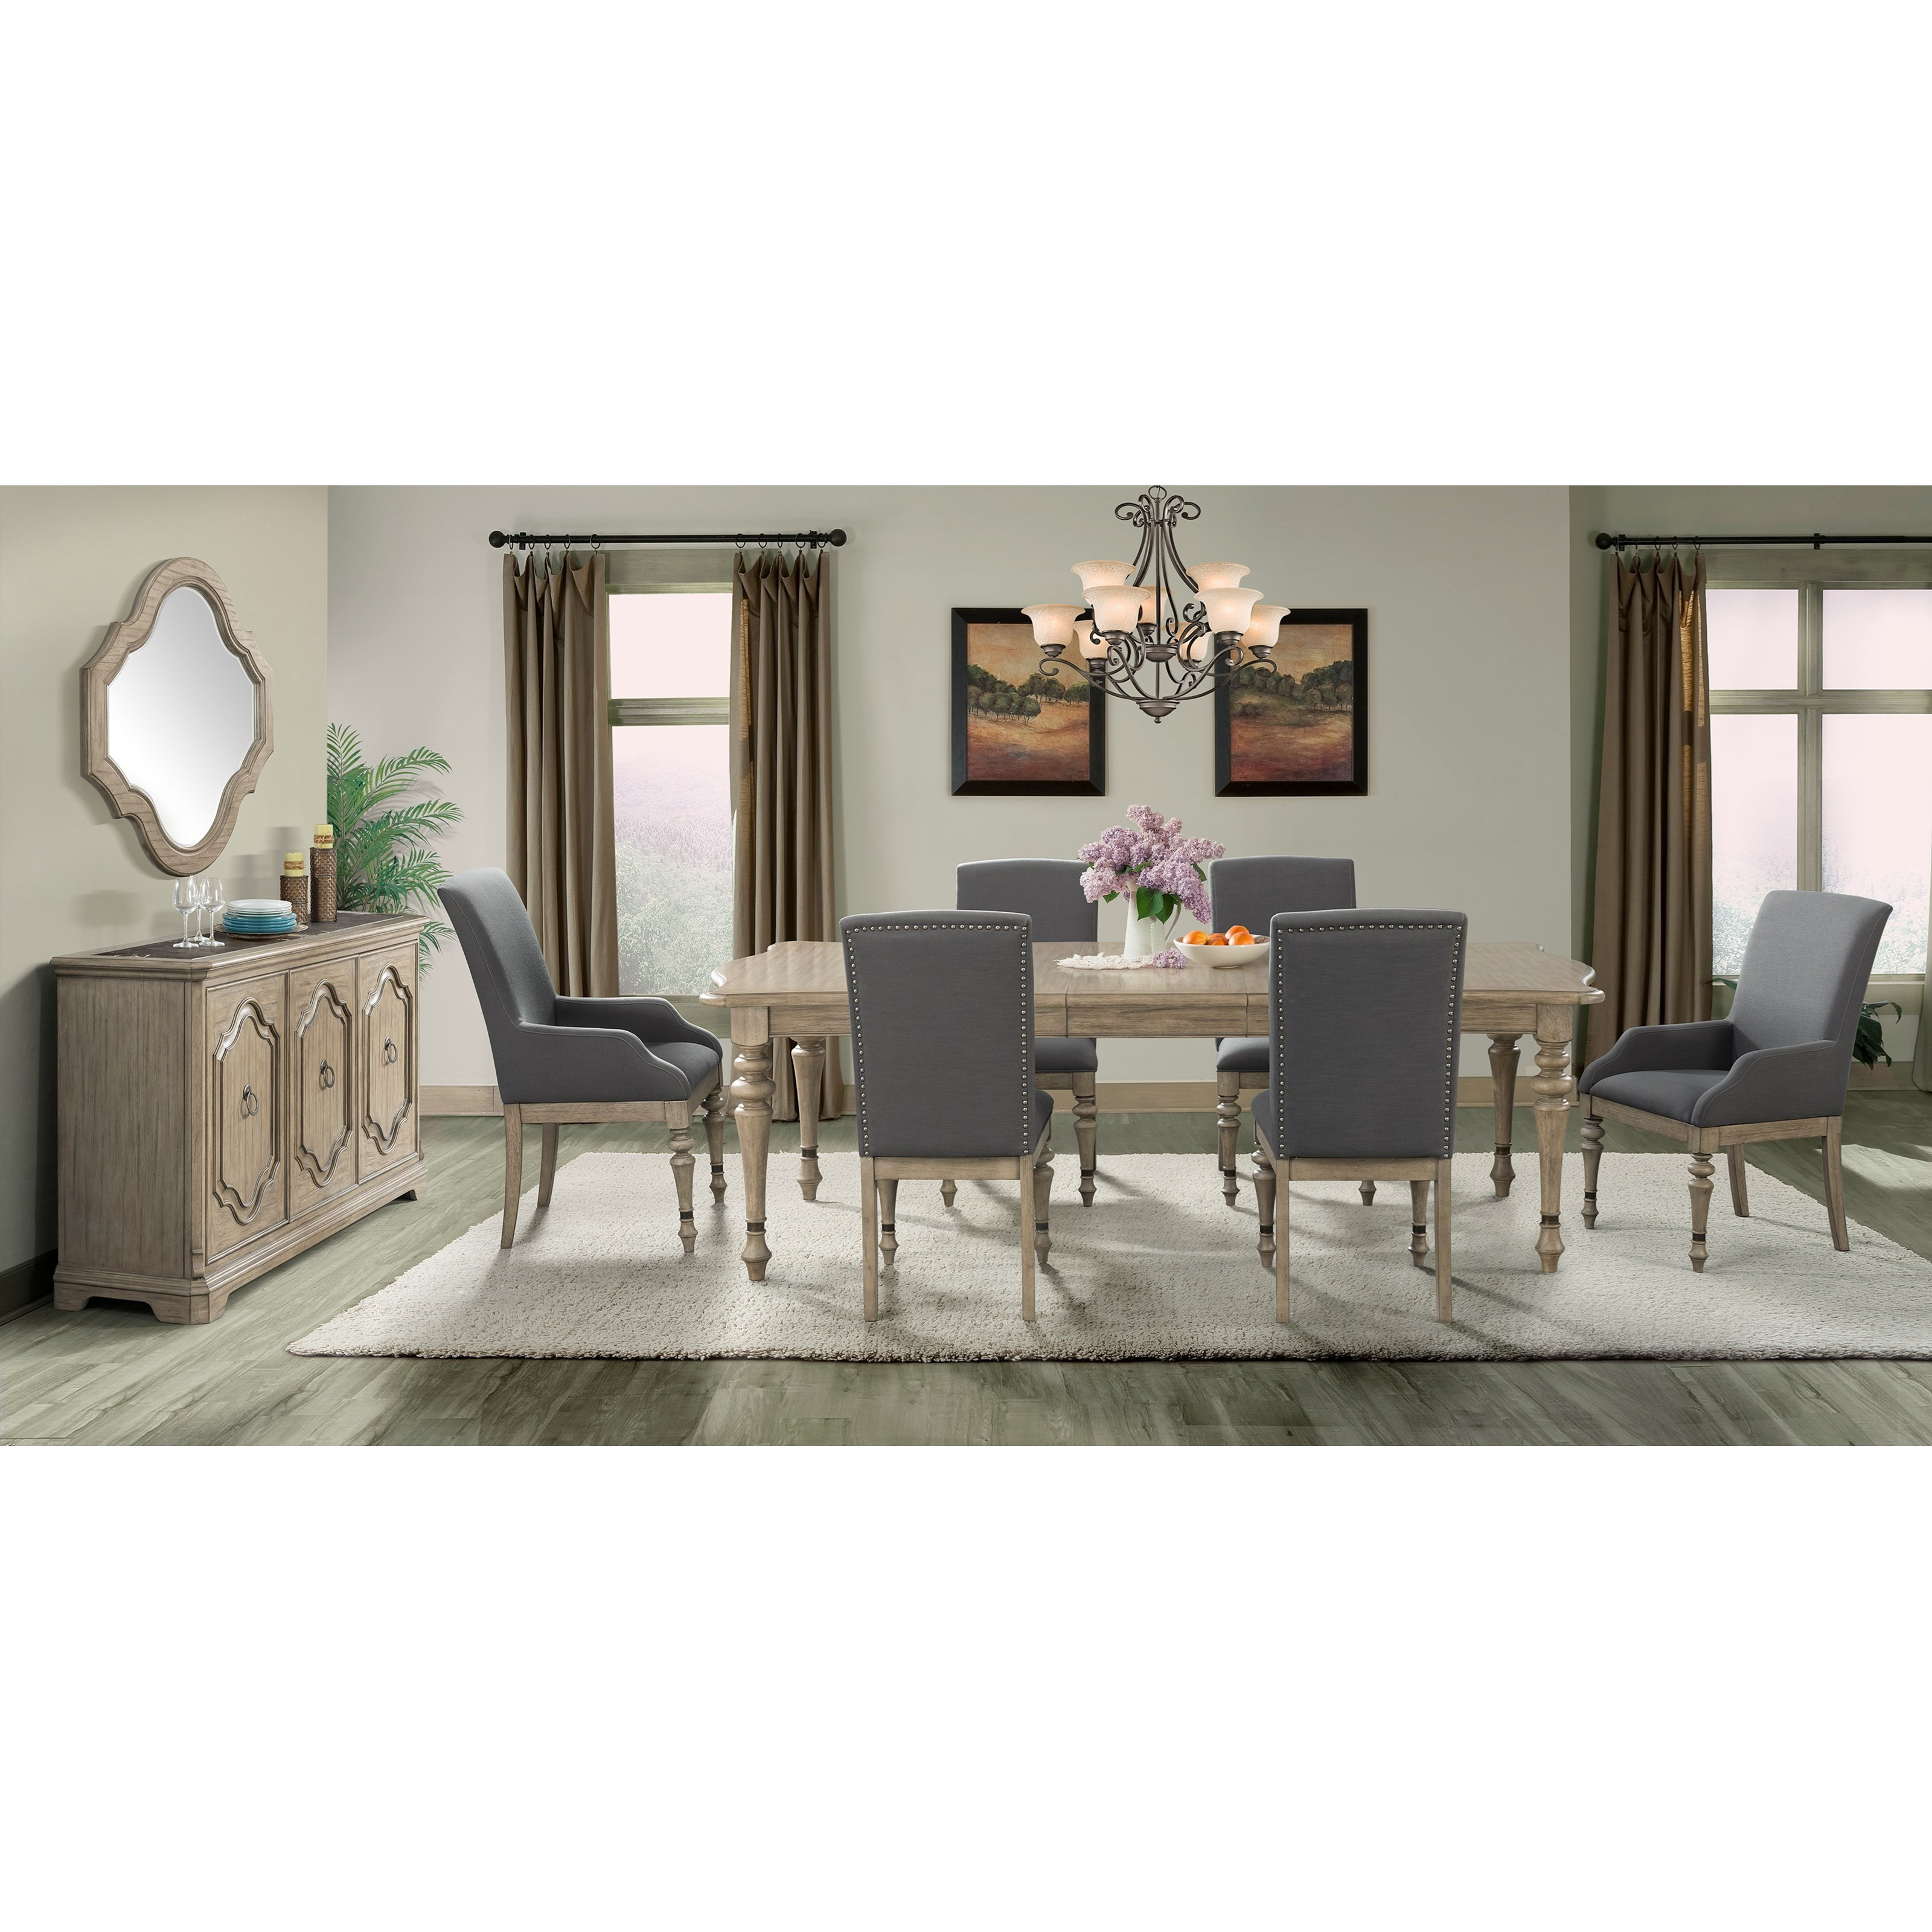 Attractive Riverside Furniture Corinne Formal Dining Room Group